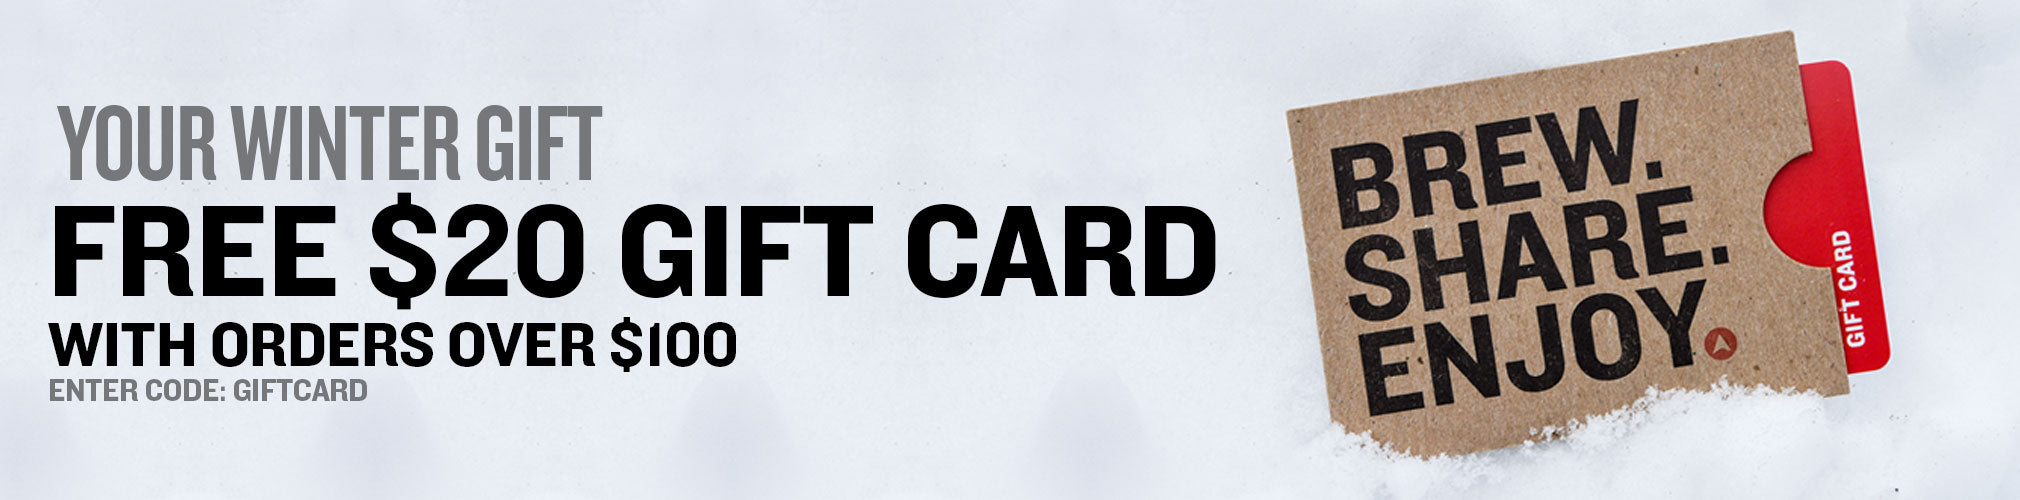 Free $20 Gift Card with Orders Over $200